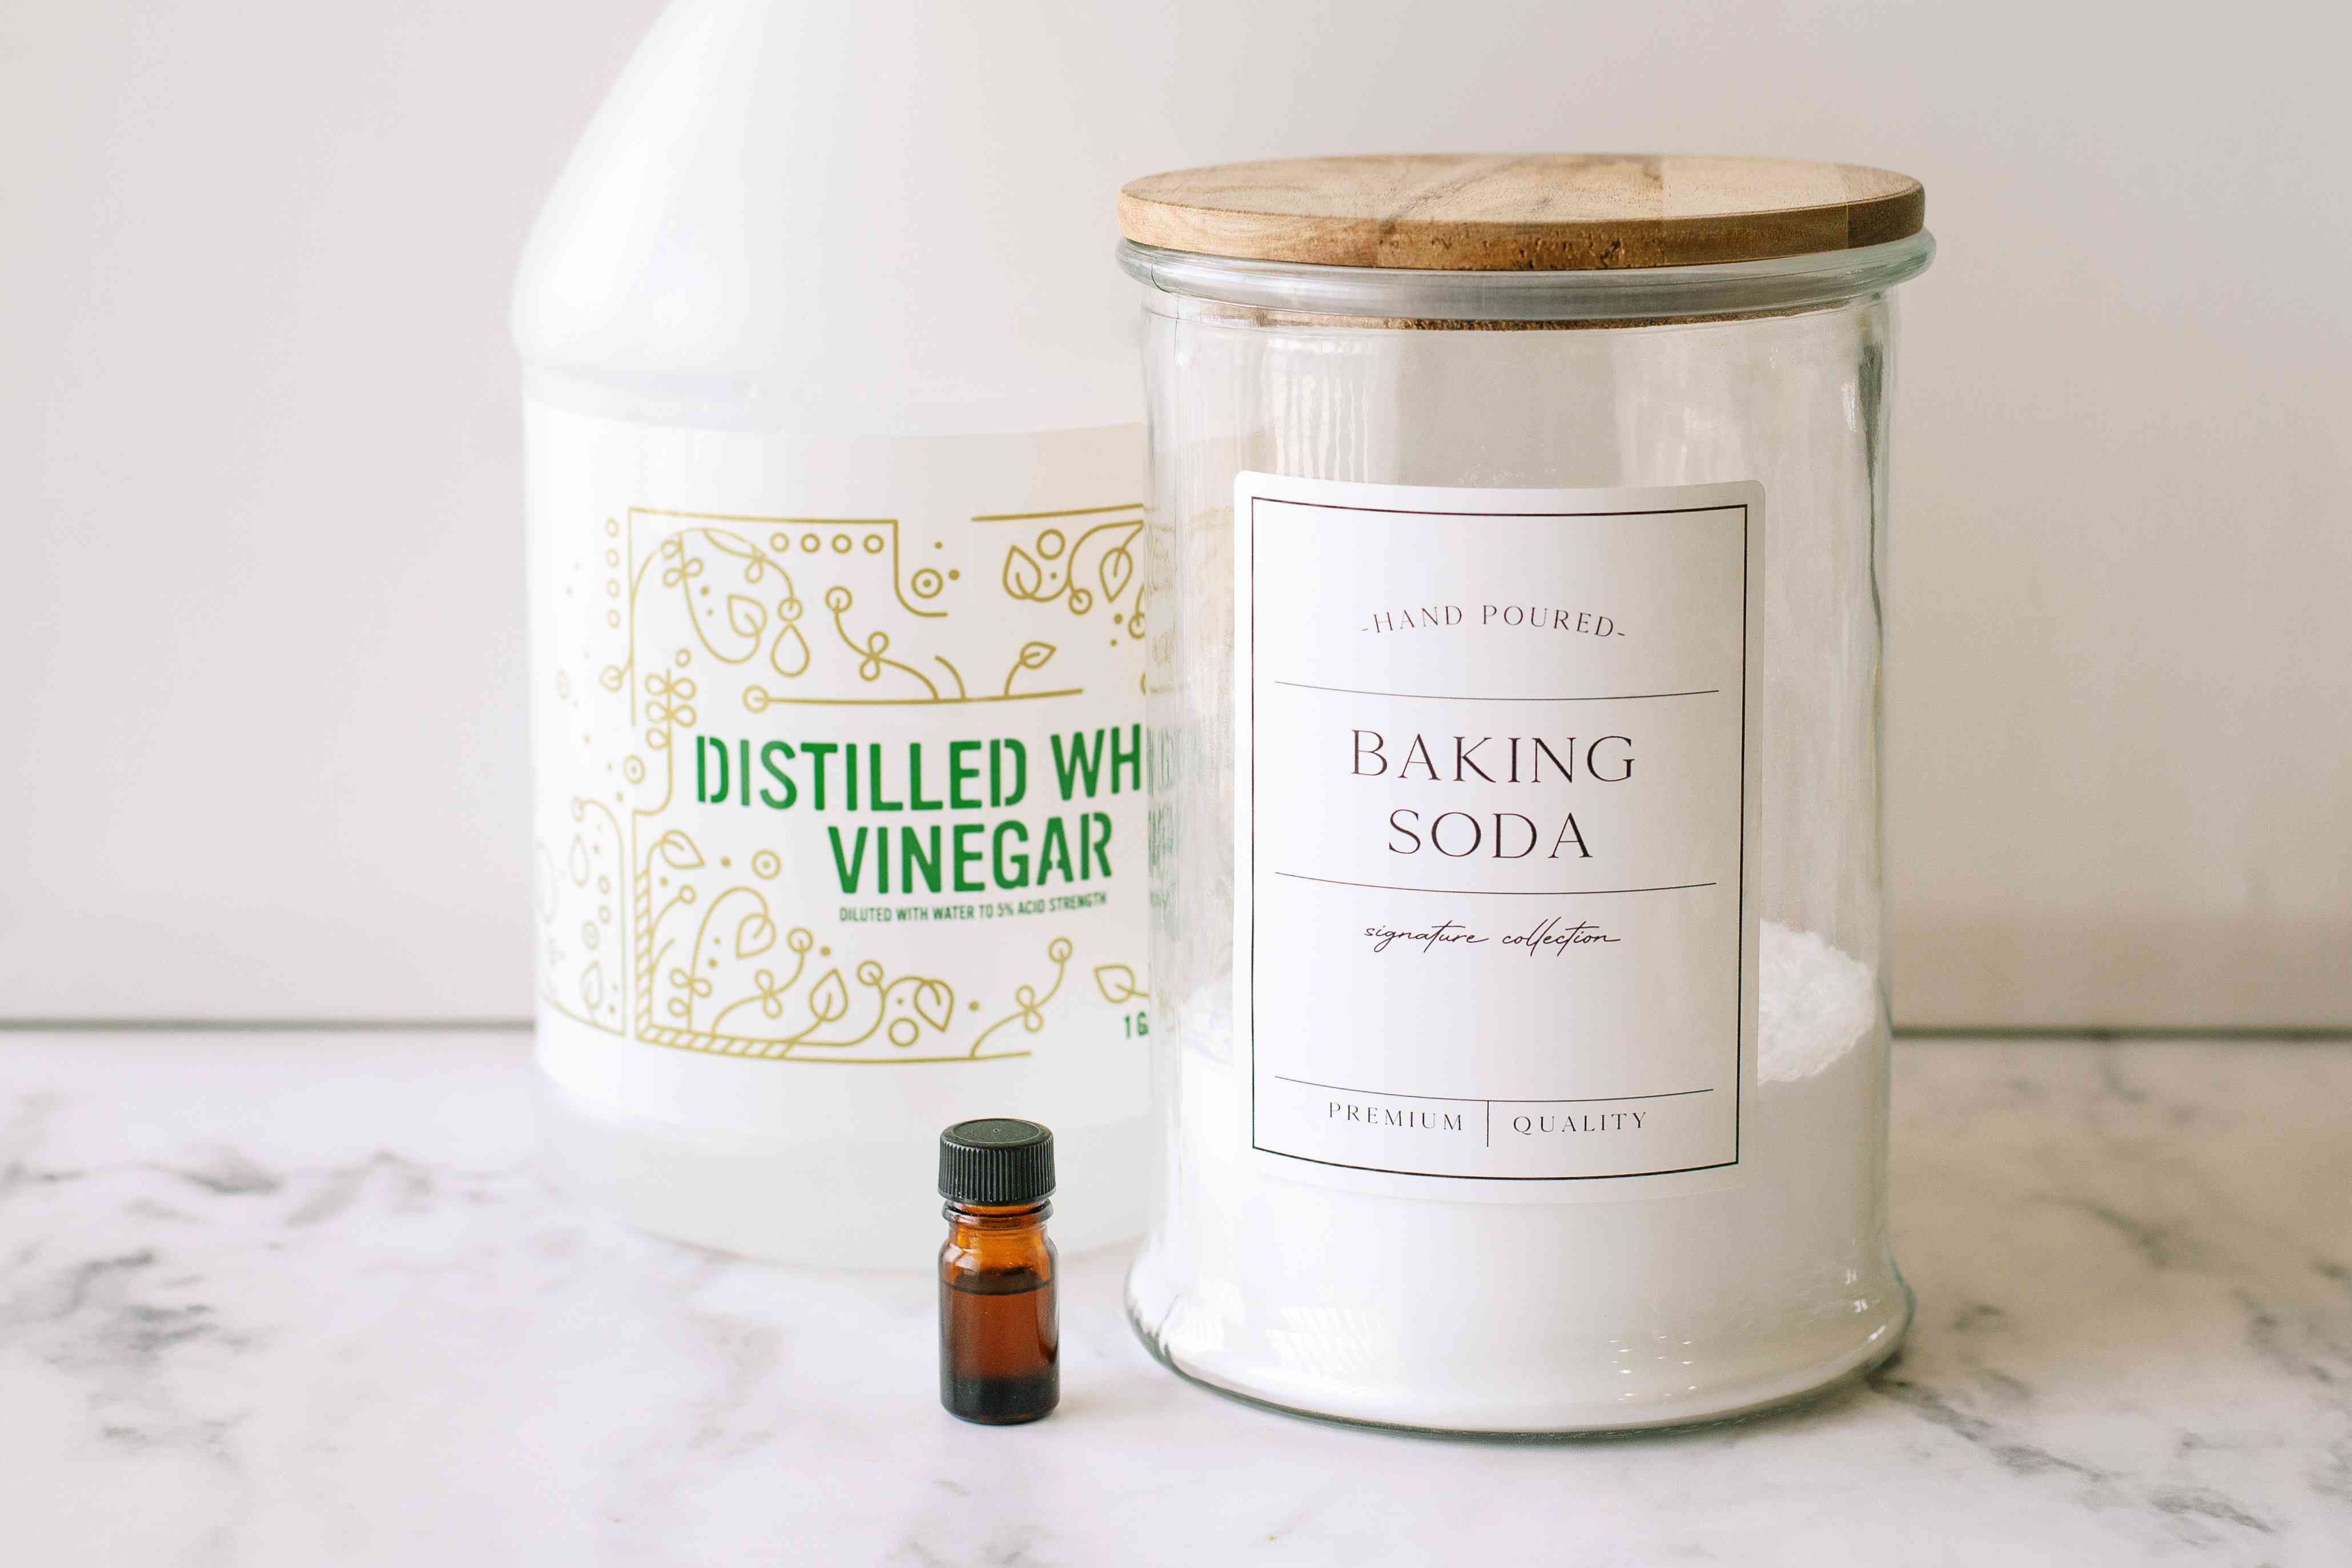 Homemade fabric softener with distilled white vinegar, baking soda and essential oil